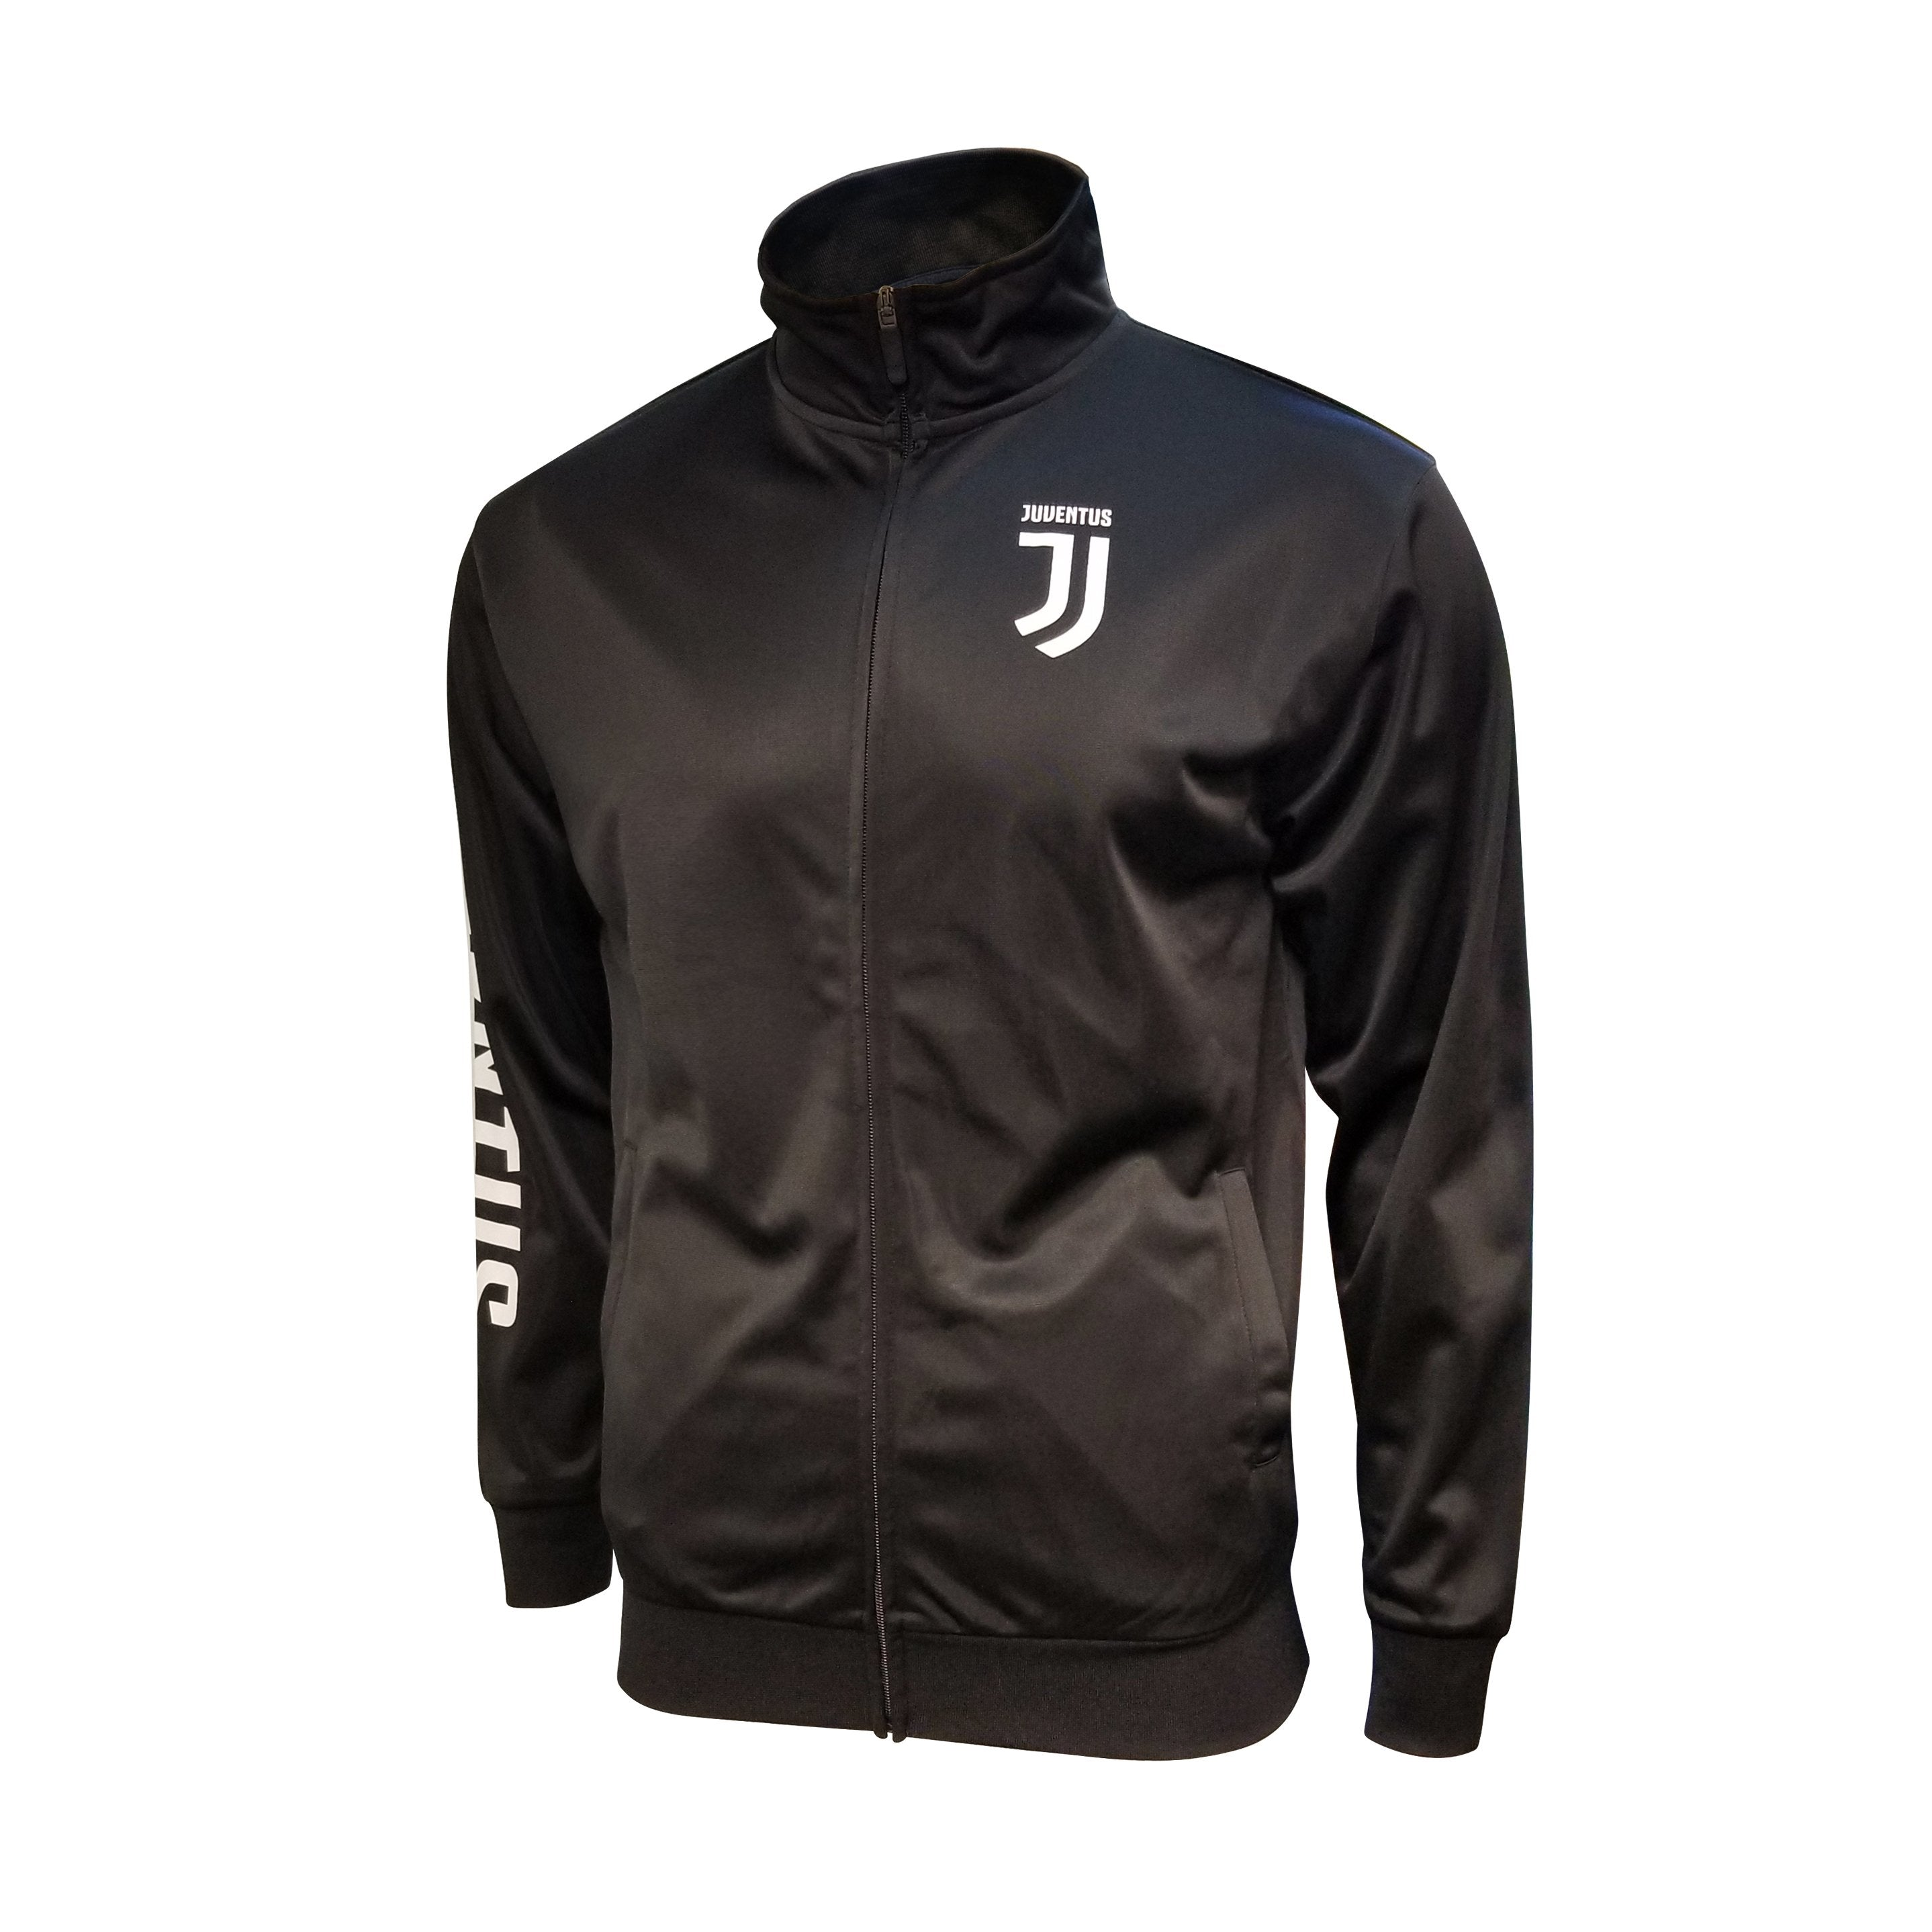 Juventus Youth Full-Zip Track Jacket - Black by Icon Sports